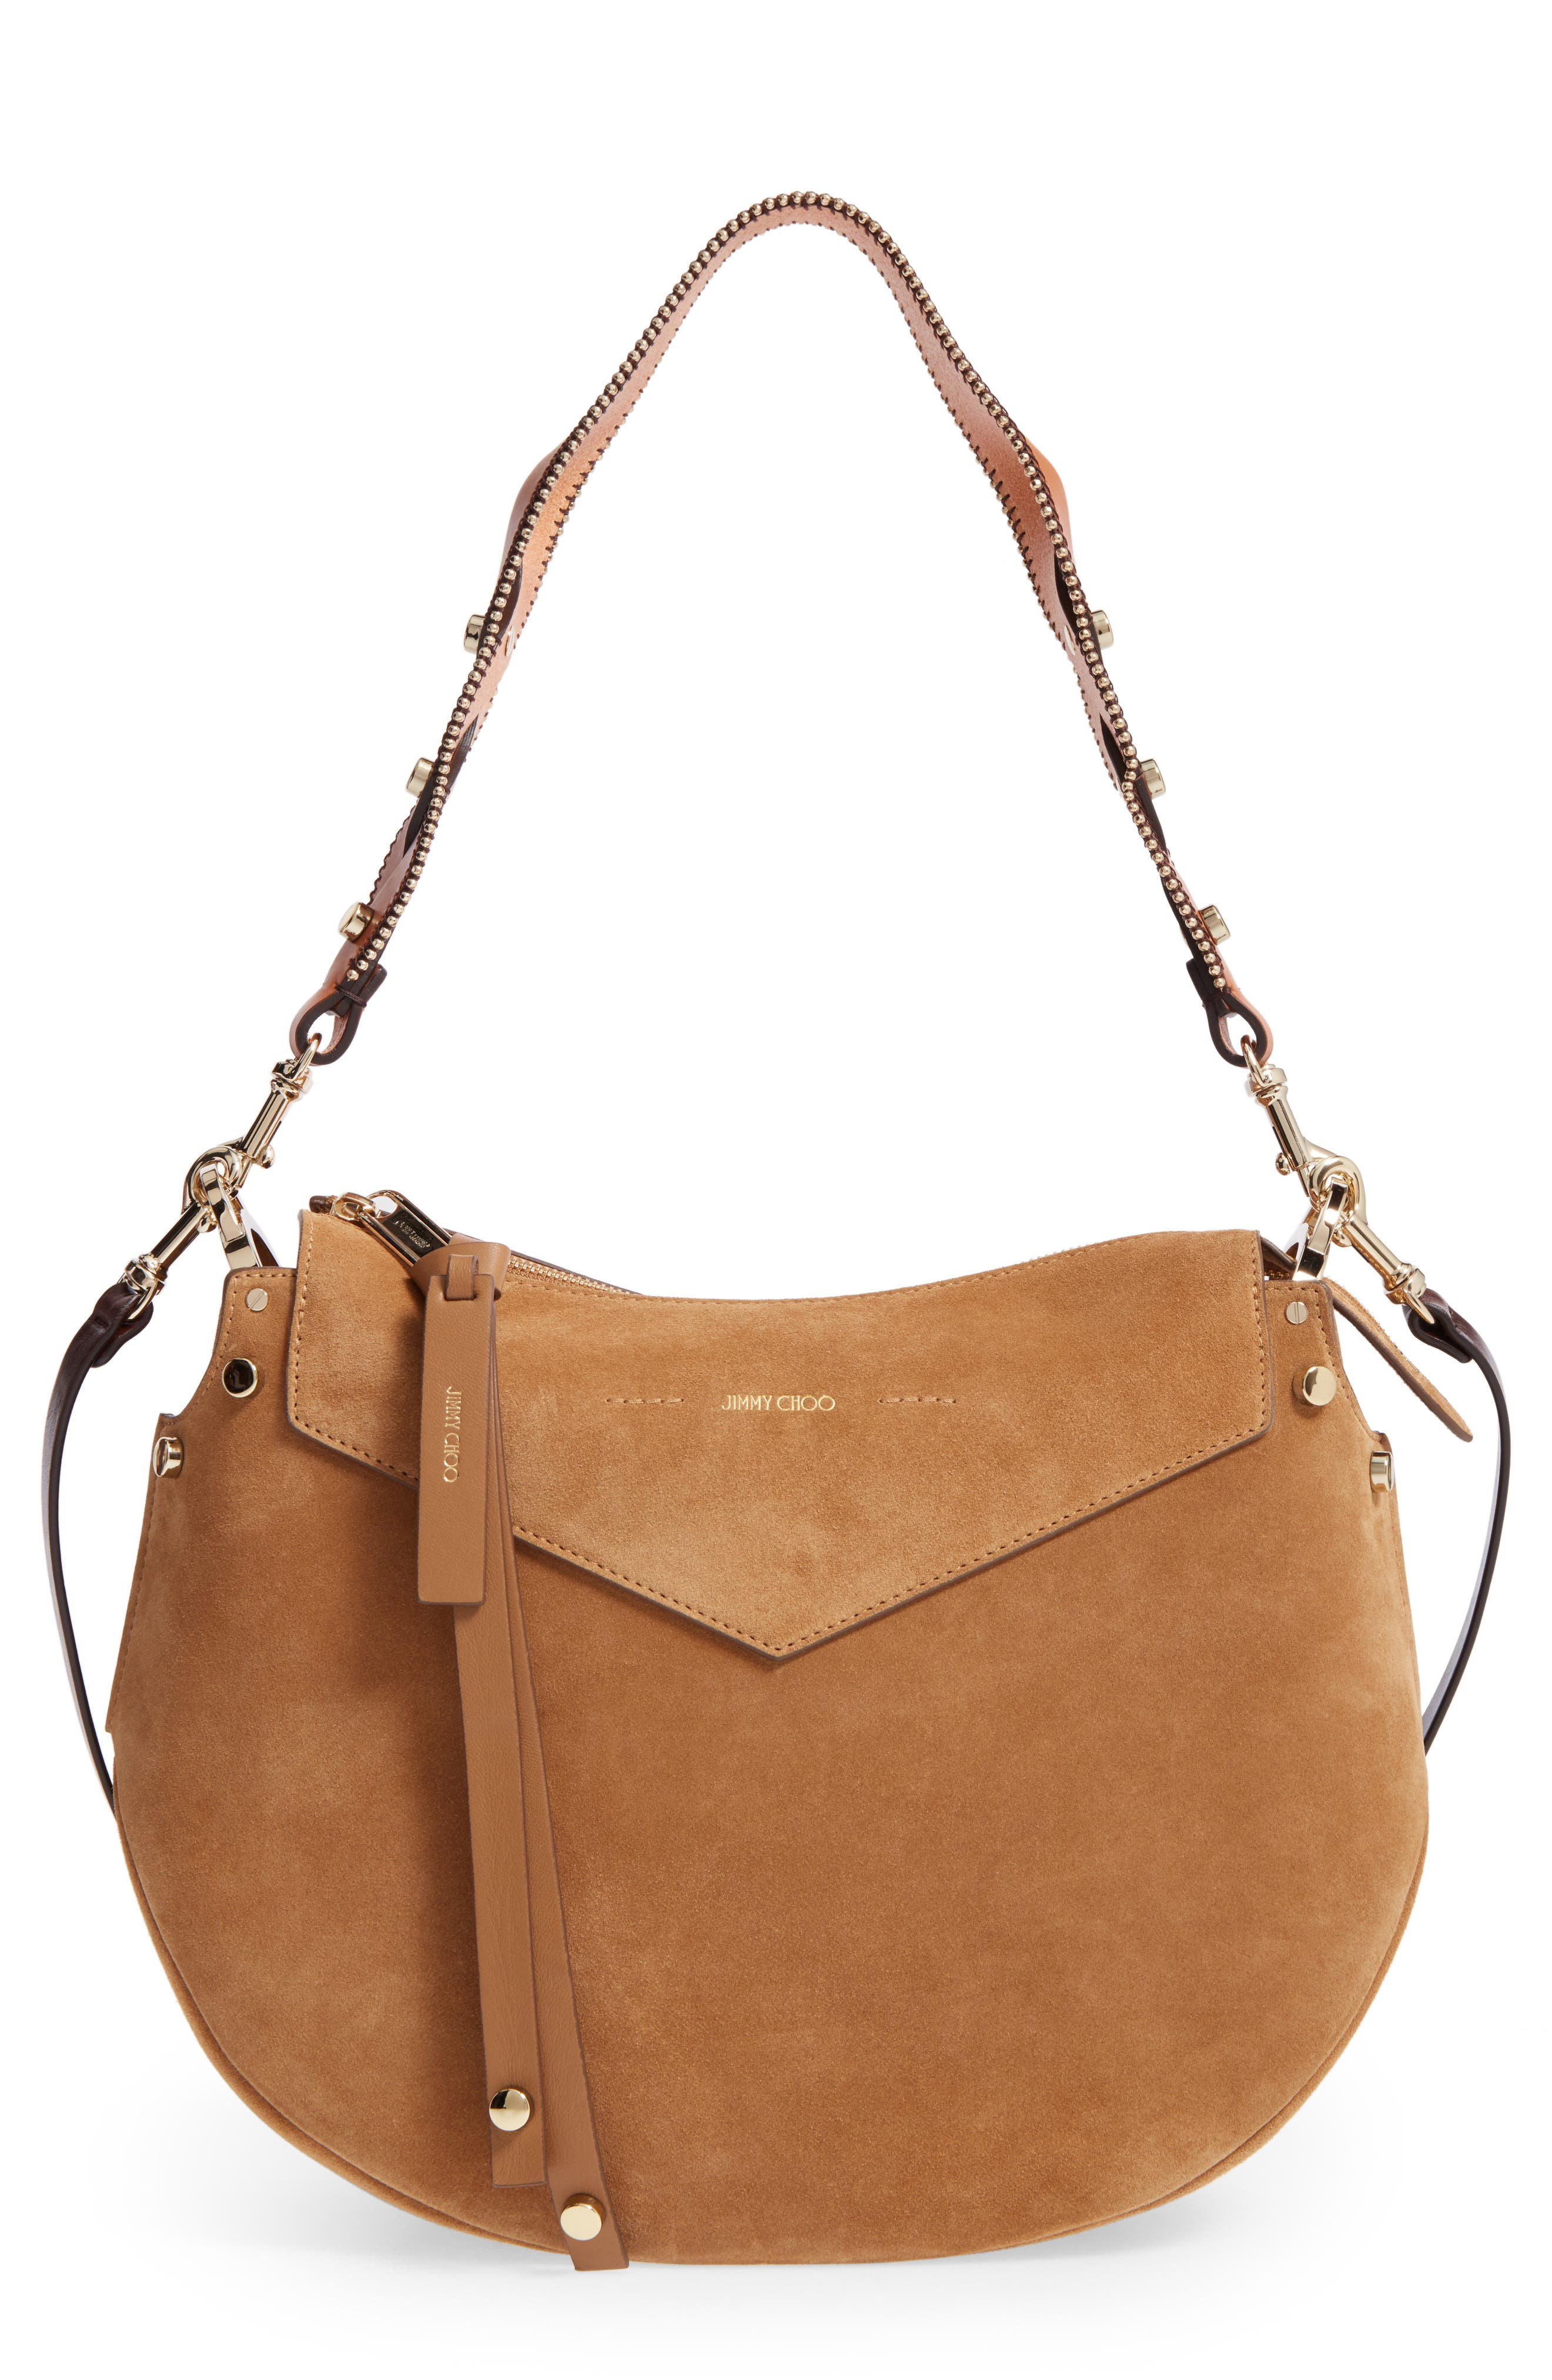 Main Image - Jimmy Choo Artie Suede Hobo Bag